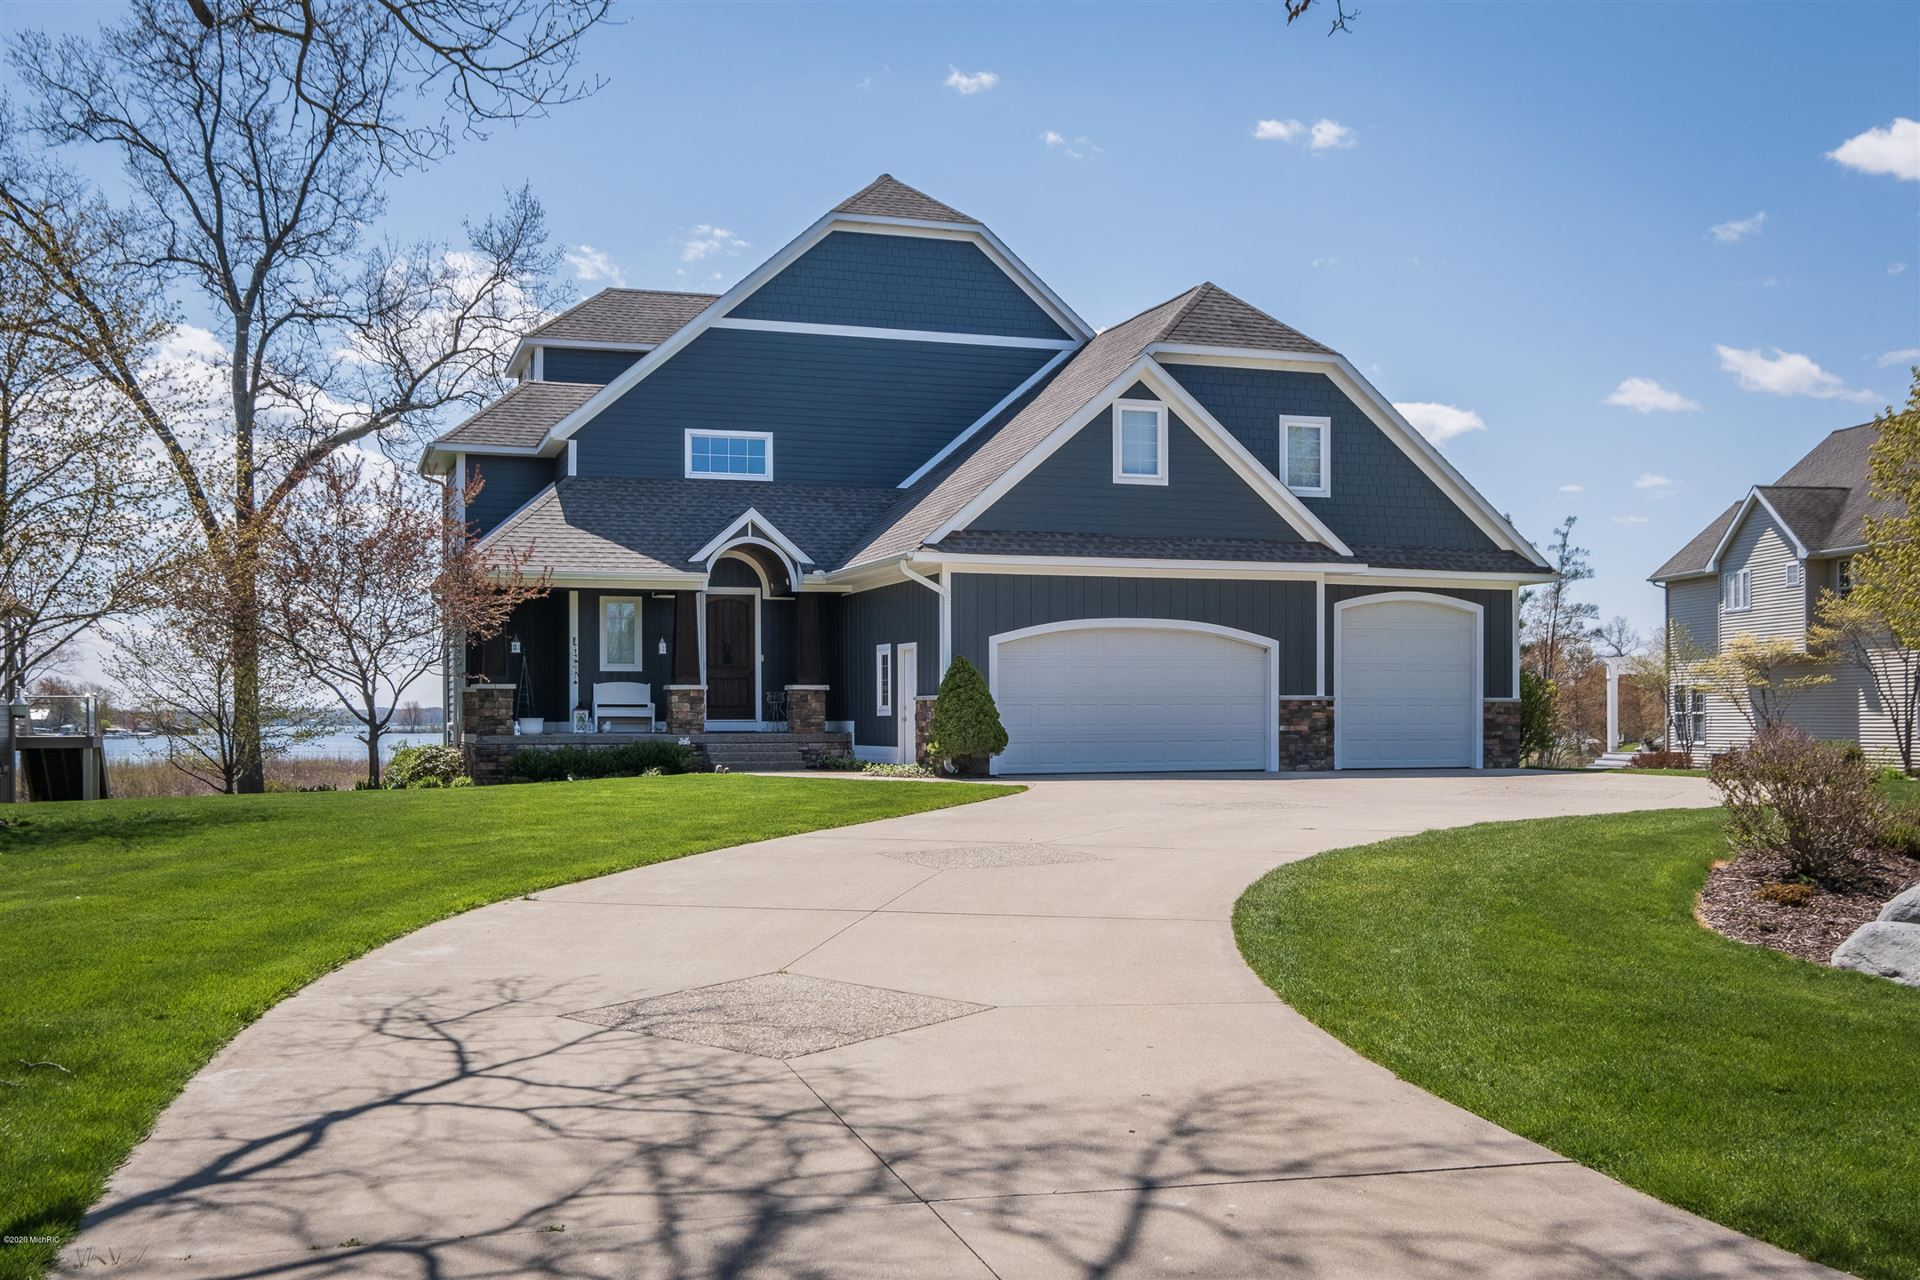 12395 Bay View Drive, Wayland, MI 49348 - MLS#: 20013638